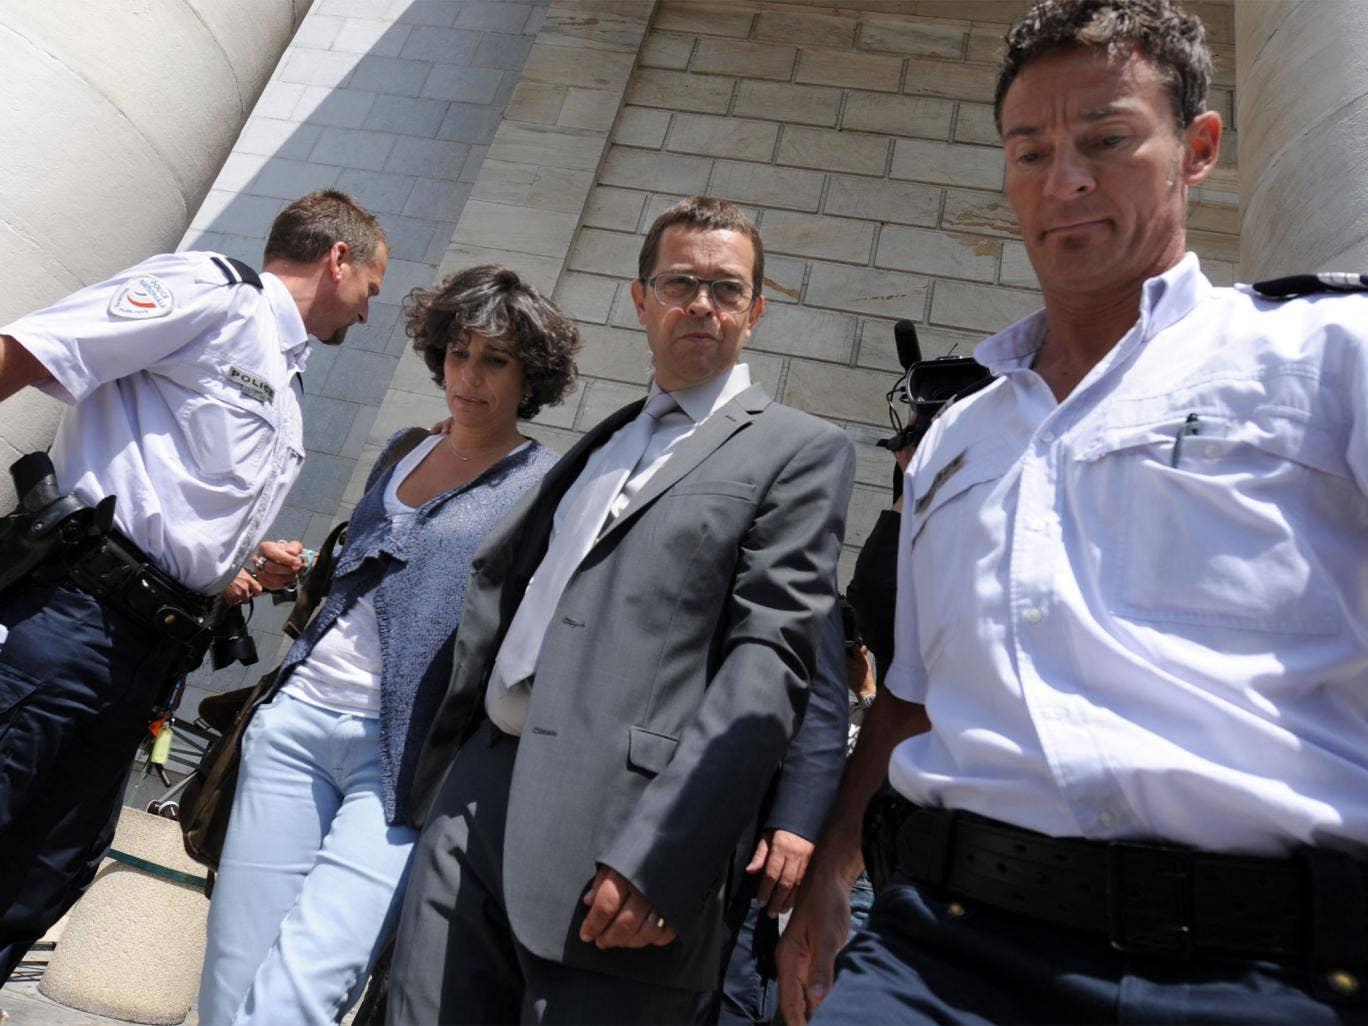 Nicolas Bonnemaison (centre) leaving the Pau courthouse with his wife Julie on the first day of his trial